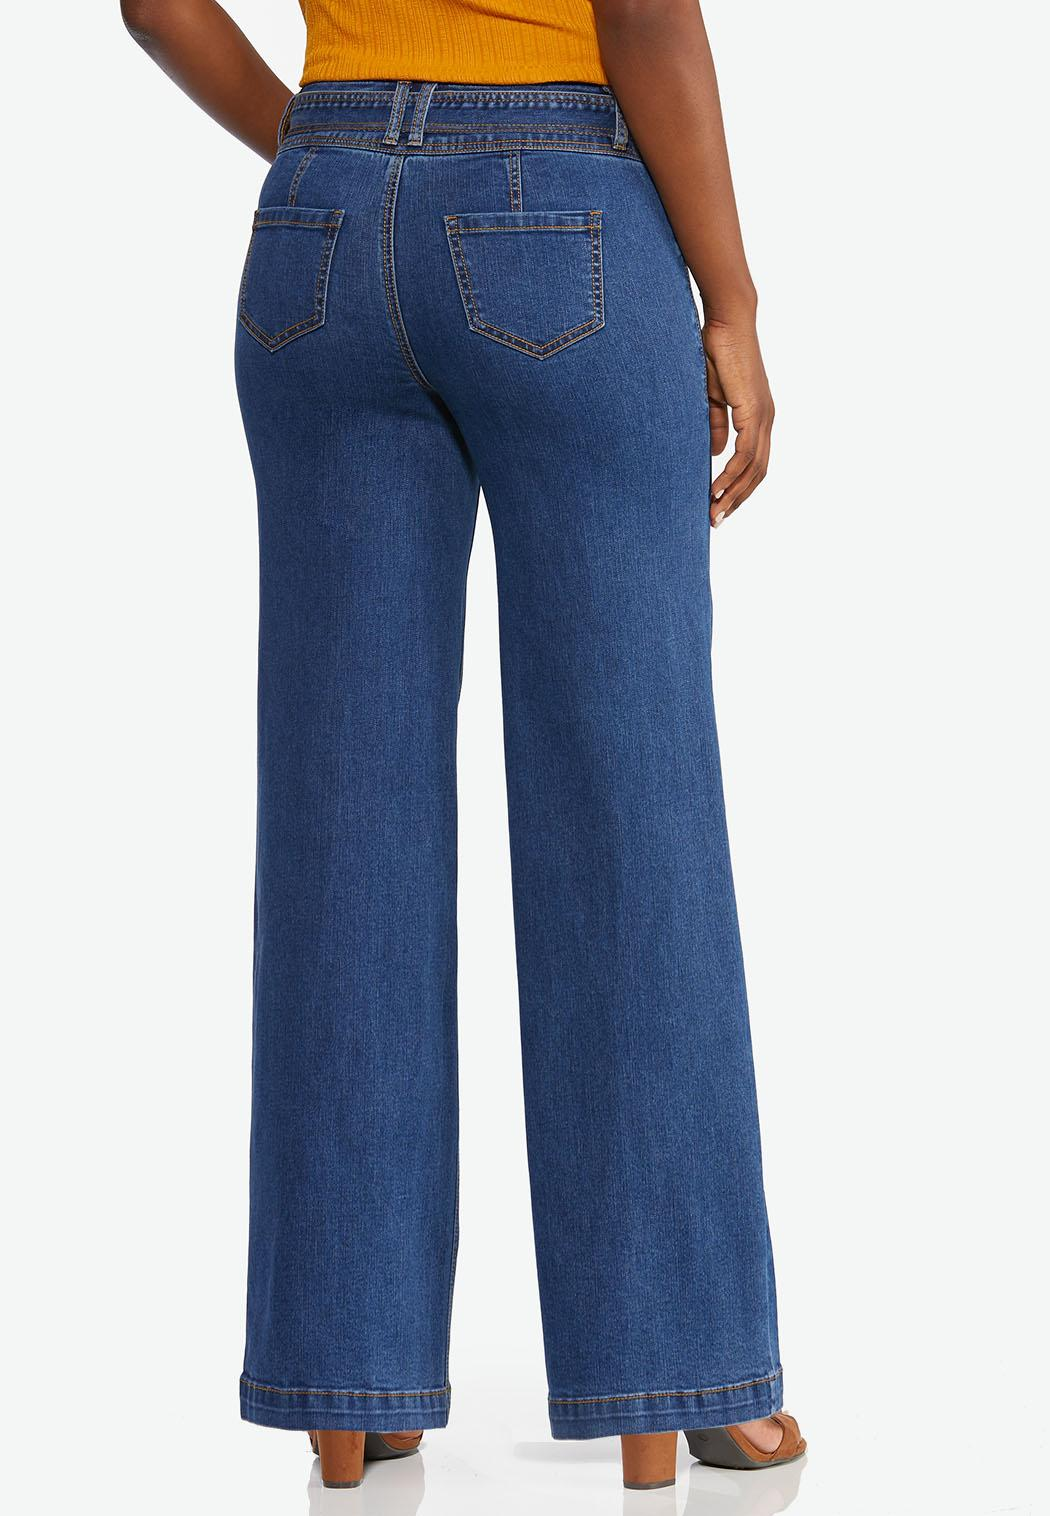 Tie Front Flare Jeans (Item #44350982)